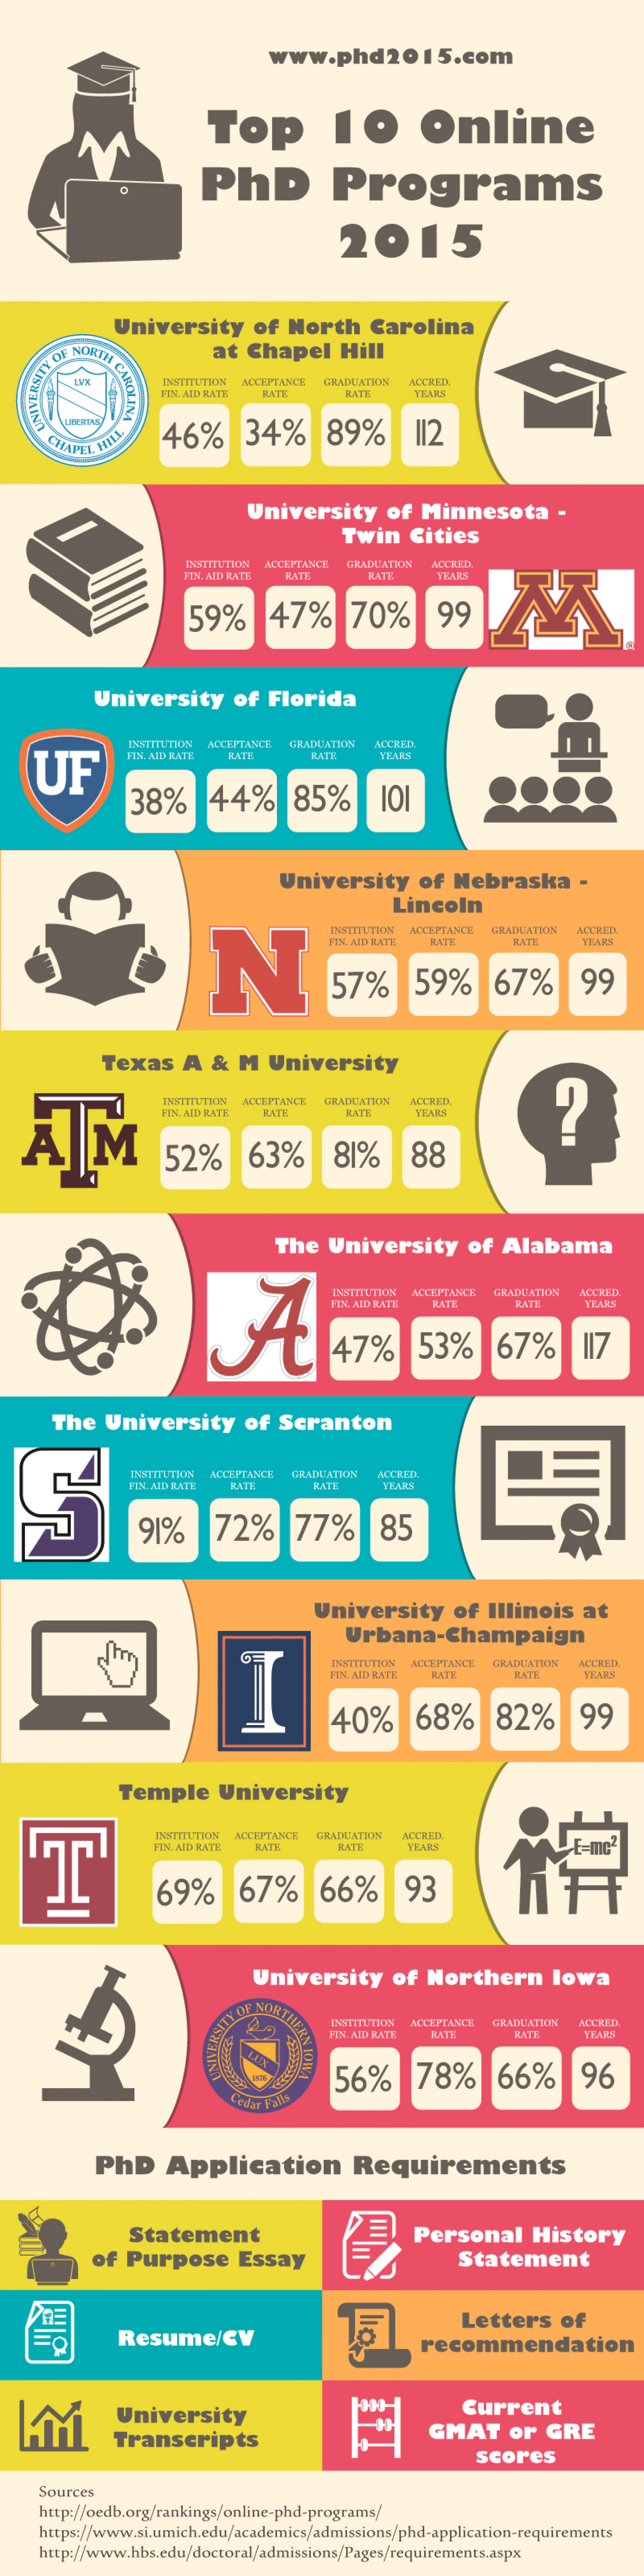 Top 10 Online PhD Programs 2015 Infographic